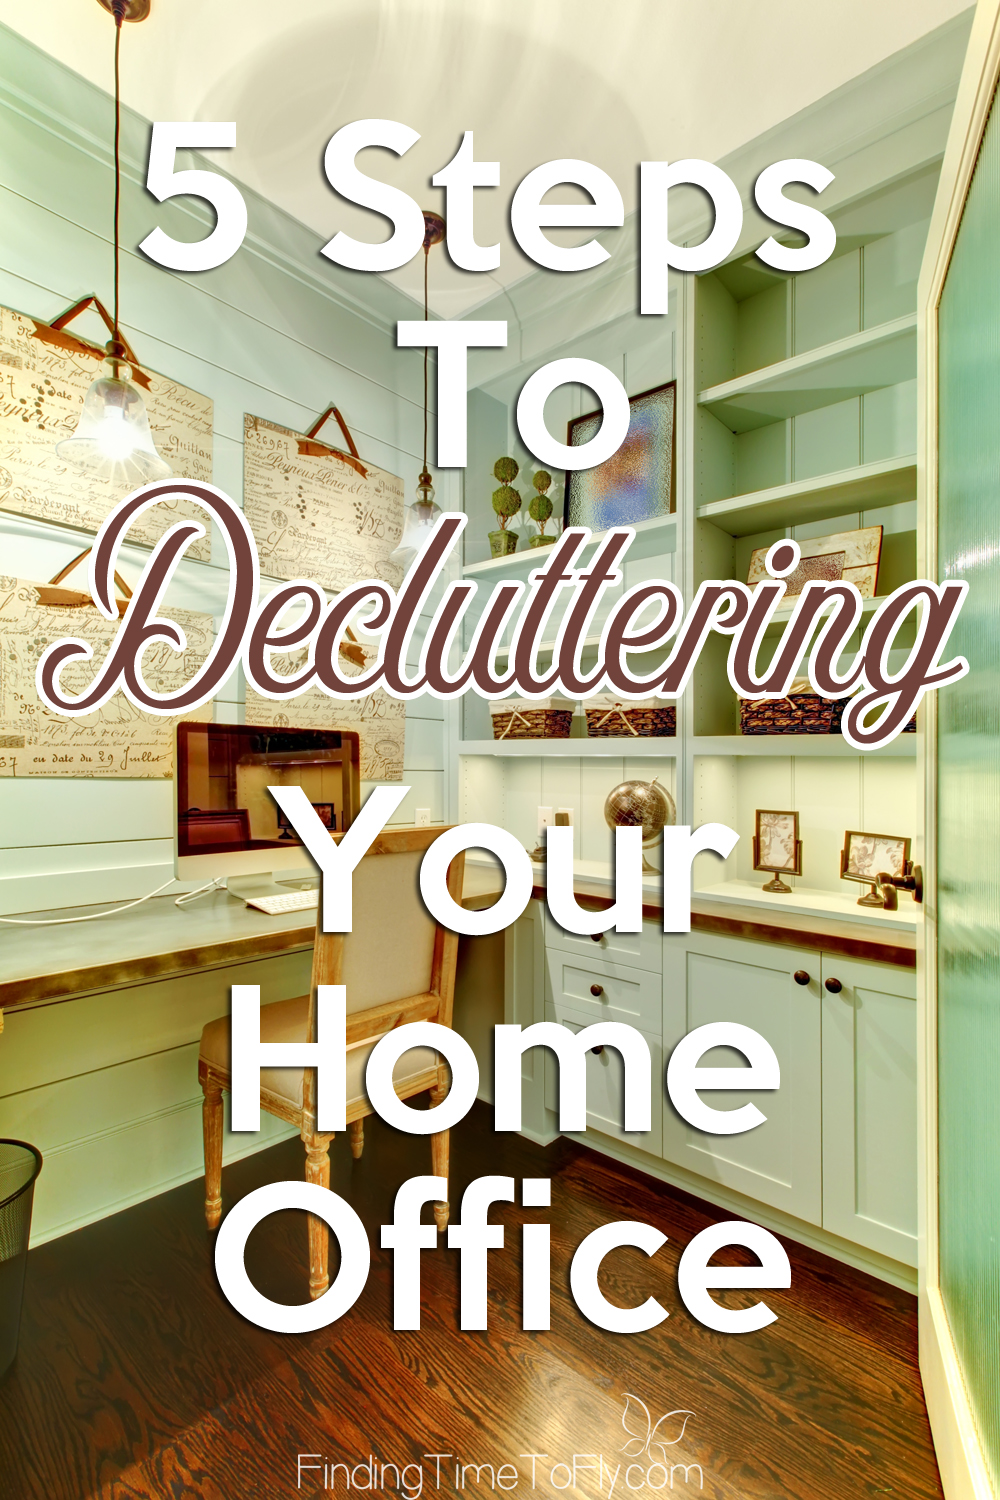 These 5 steps to decluttering your home office are habits I need to learn. I know I could be more productive in an organized work space.